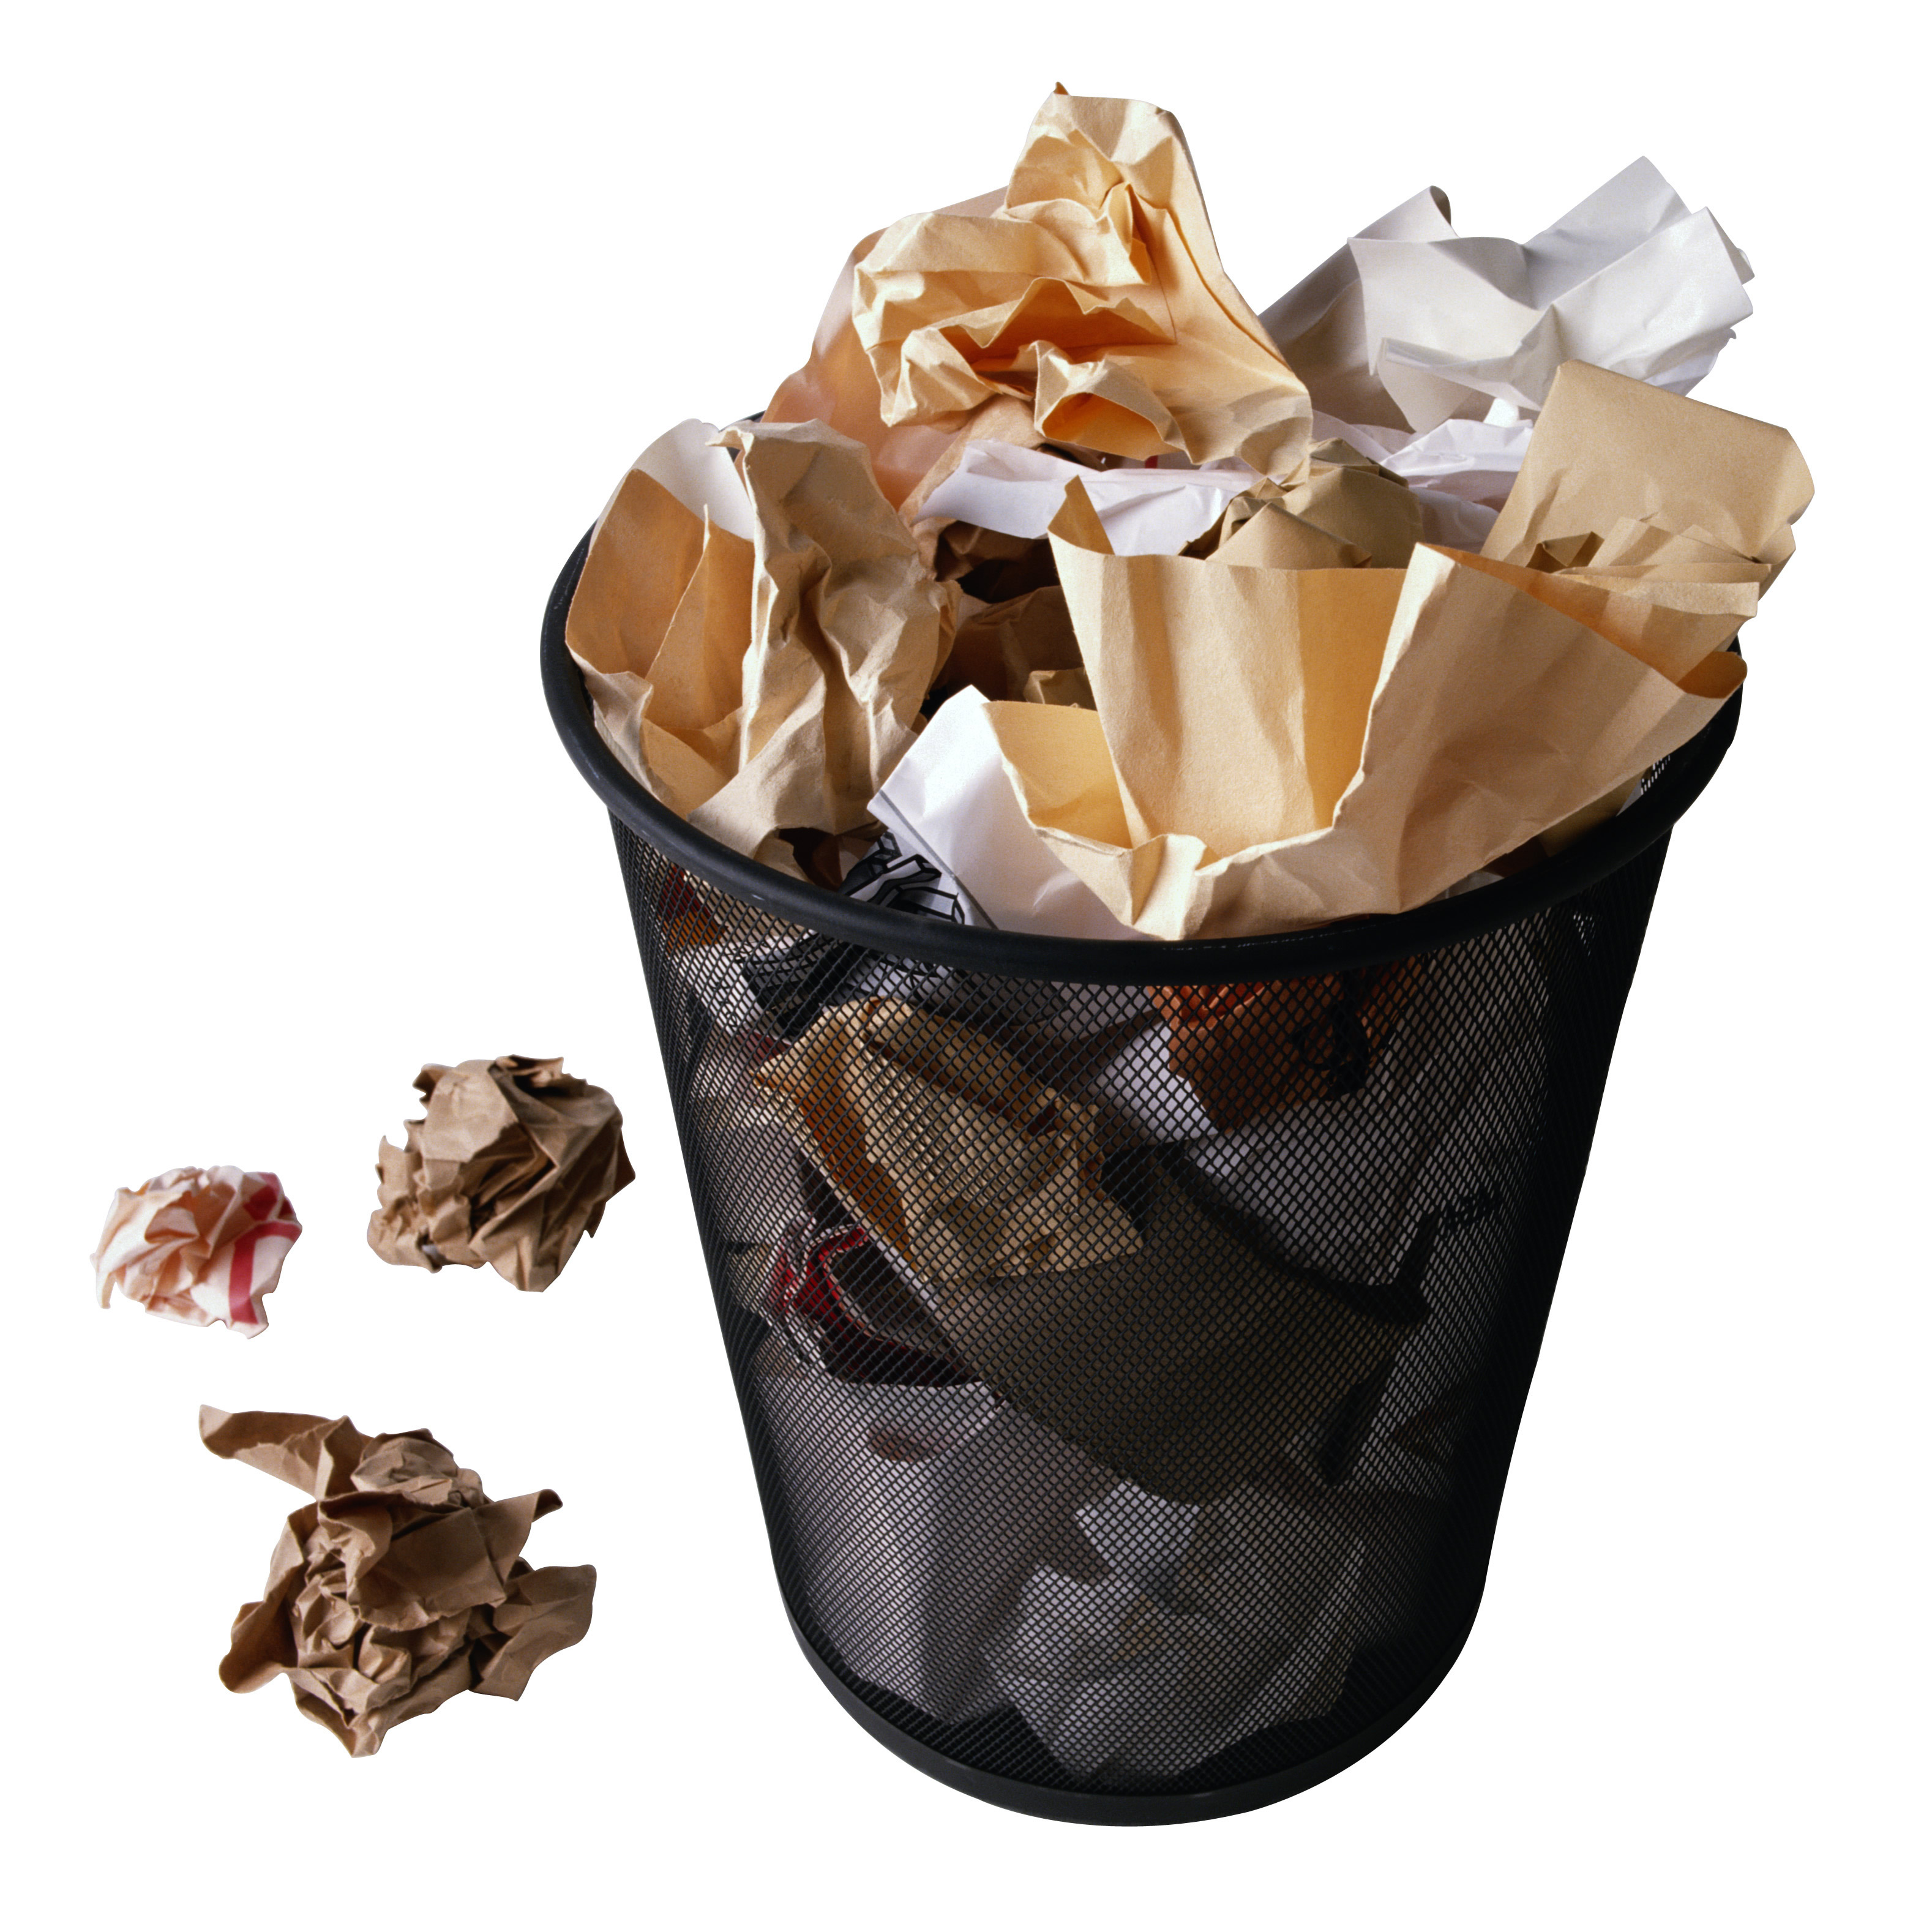 essay on reducing garbage Discusses the benefits of reducing food waste and its impact on the environment.